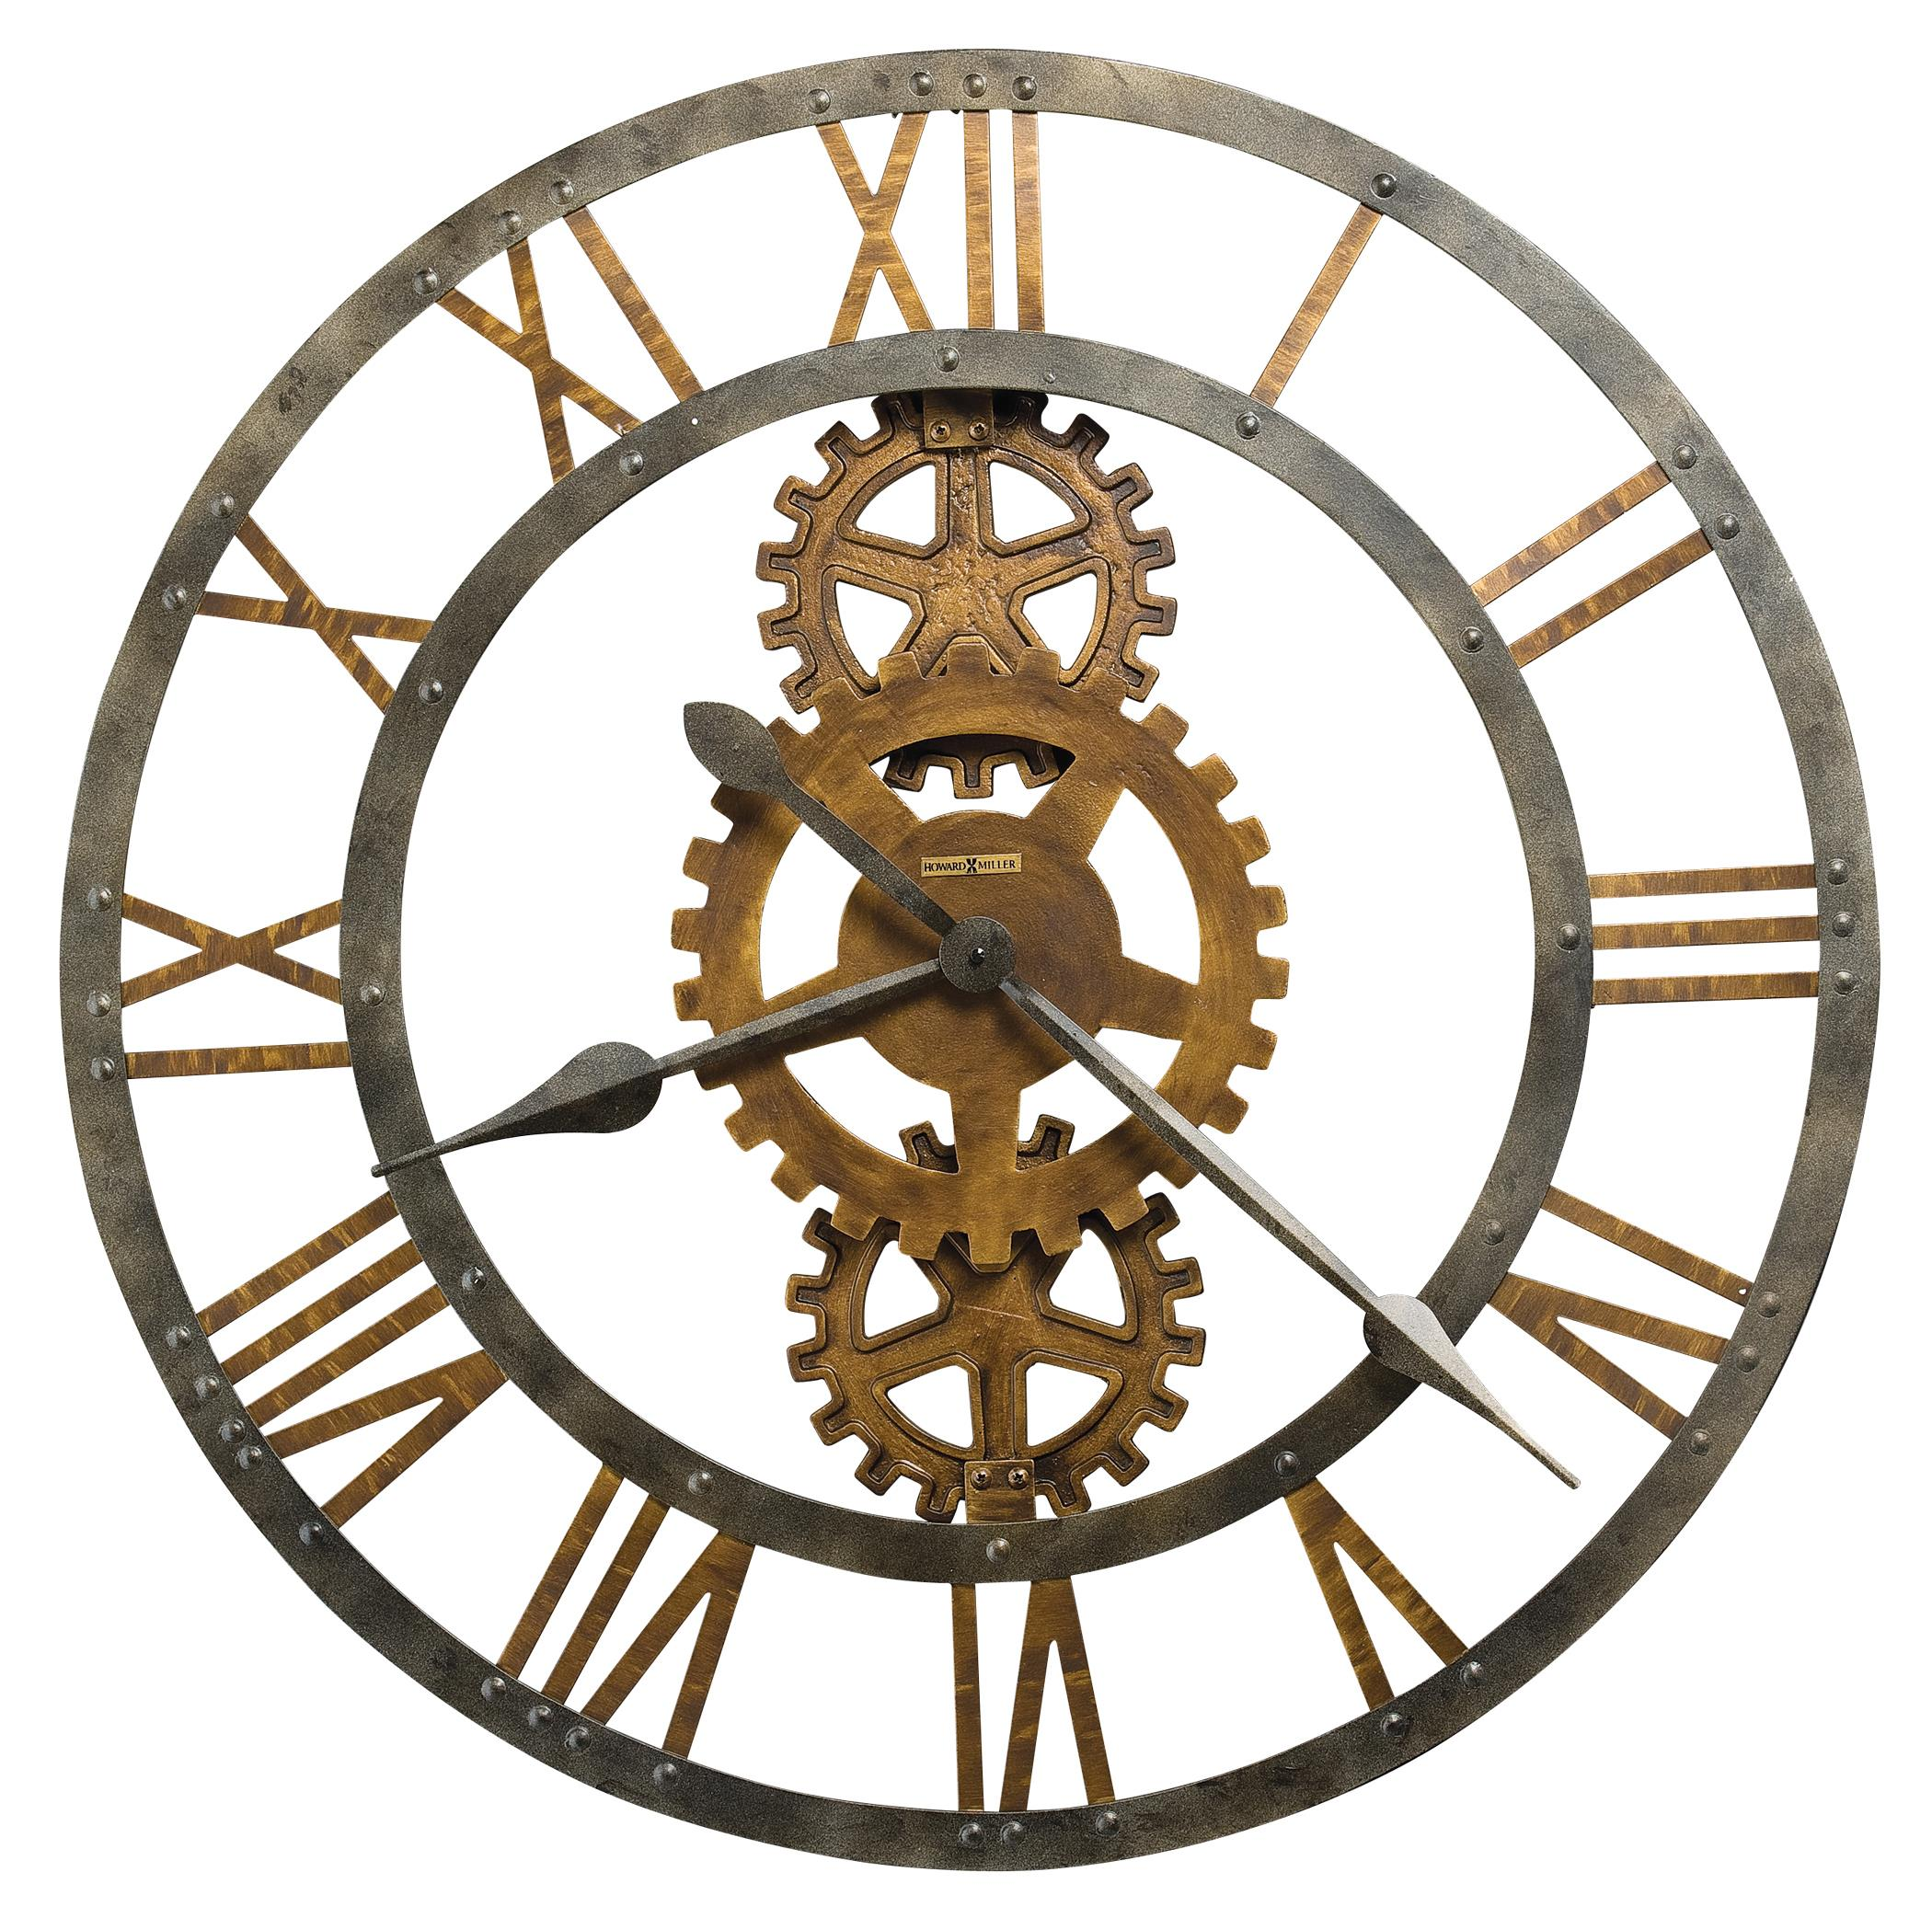 Wall Clocks Crosby Wall Clock by Howard Miller at Prime Brothers Furniture